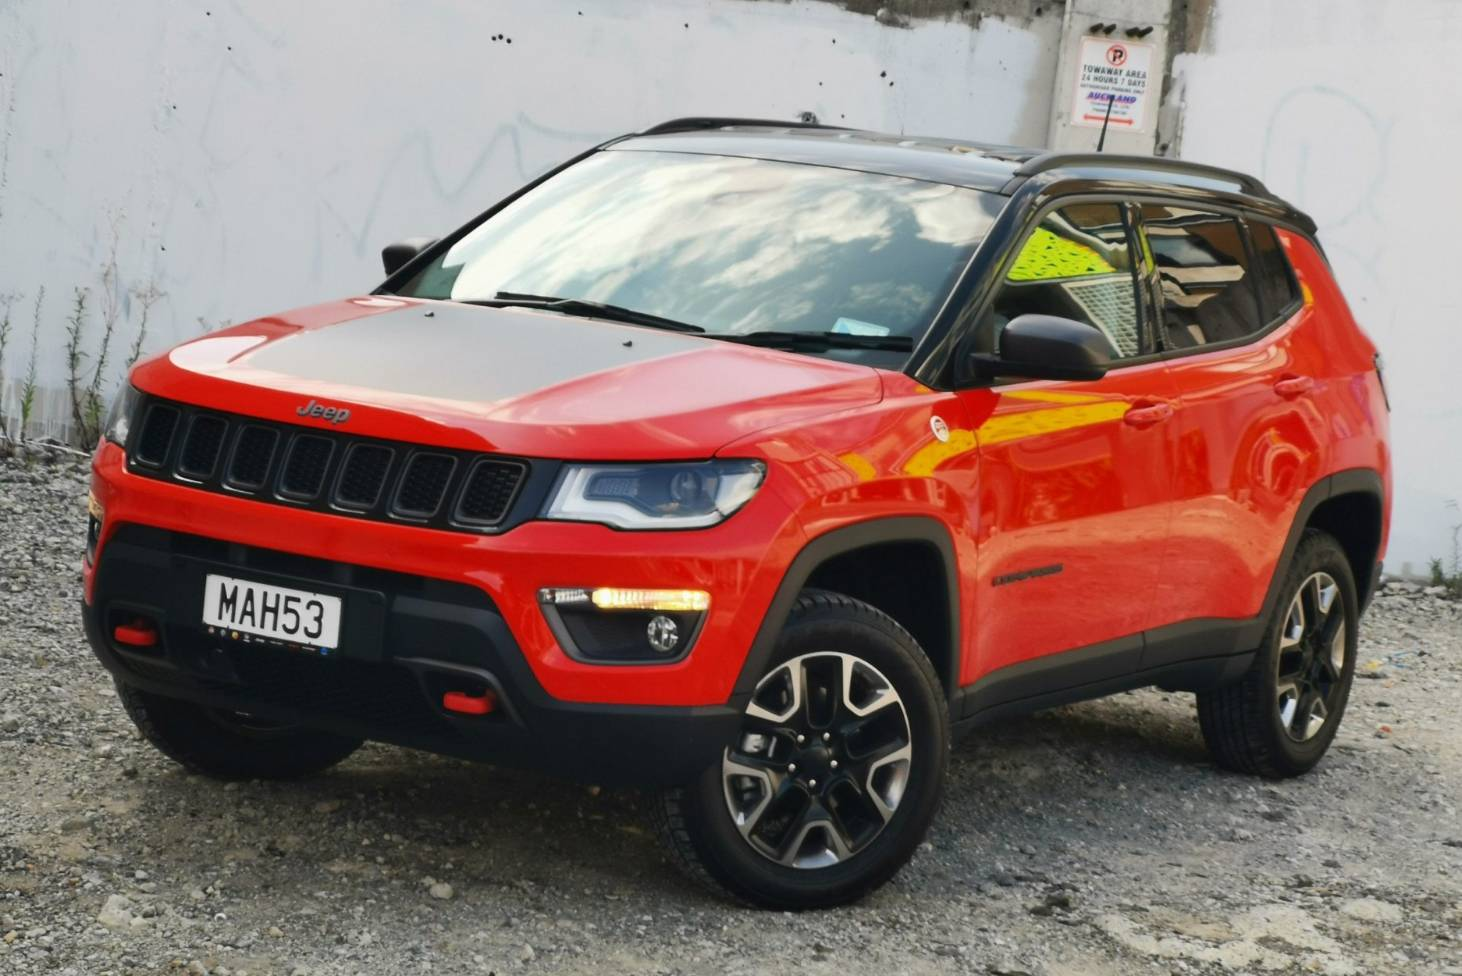 Jeep S Compass Trailhawk Is Likeable But Flawed Stuff Co Nz